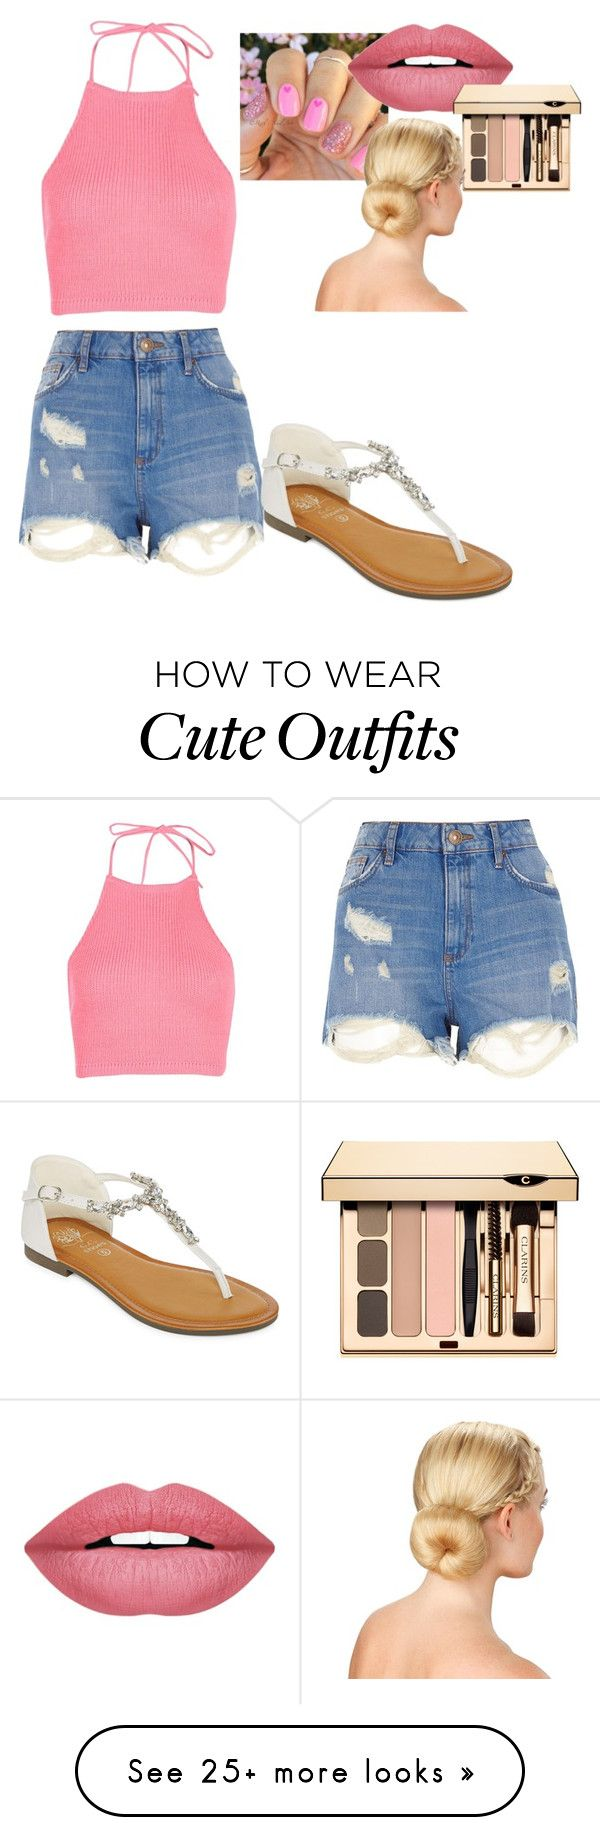 """Spring up"" by mixedgirl100 on Polyvore featuring Boohoo, River Island, GC Shoes and Forever 21"